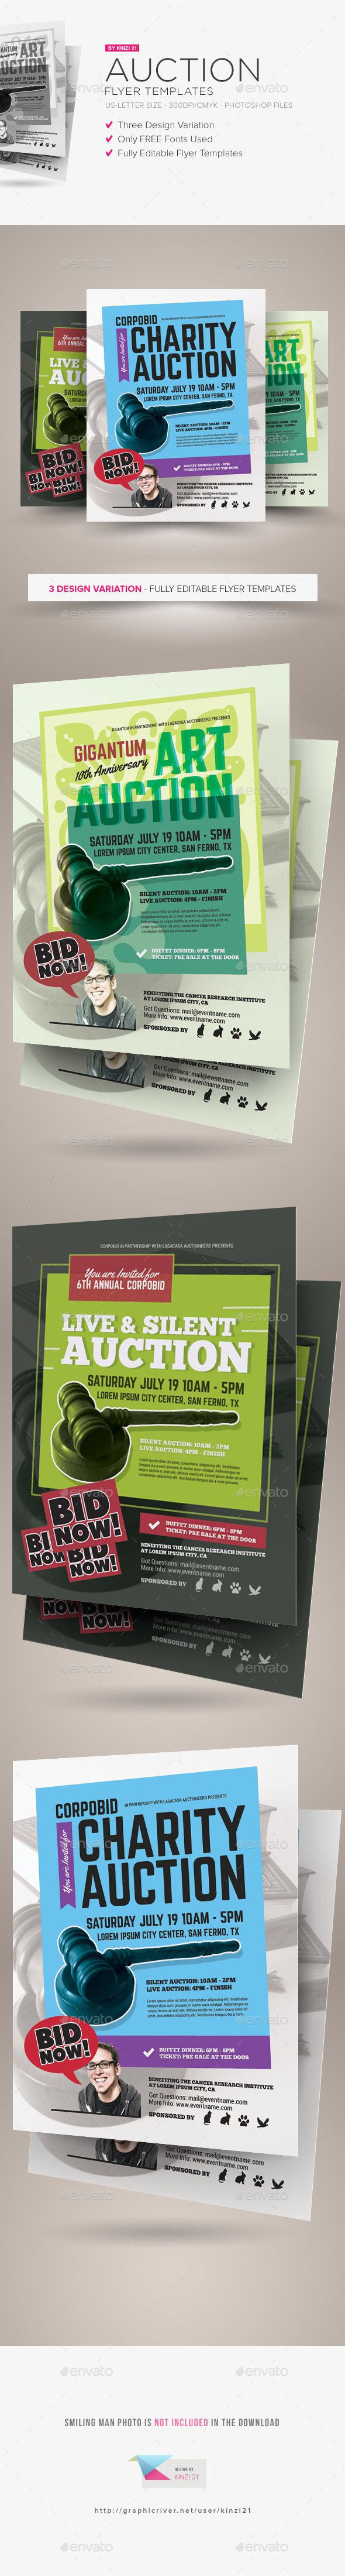 auction flyer templates charity fundraiser all pay click here